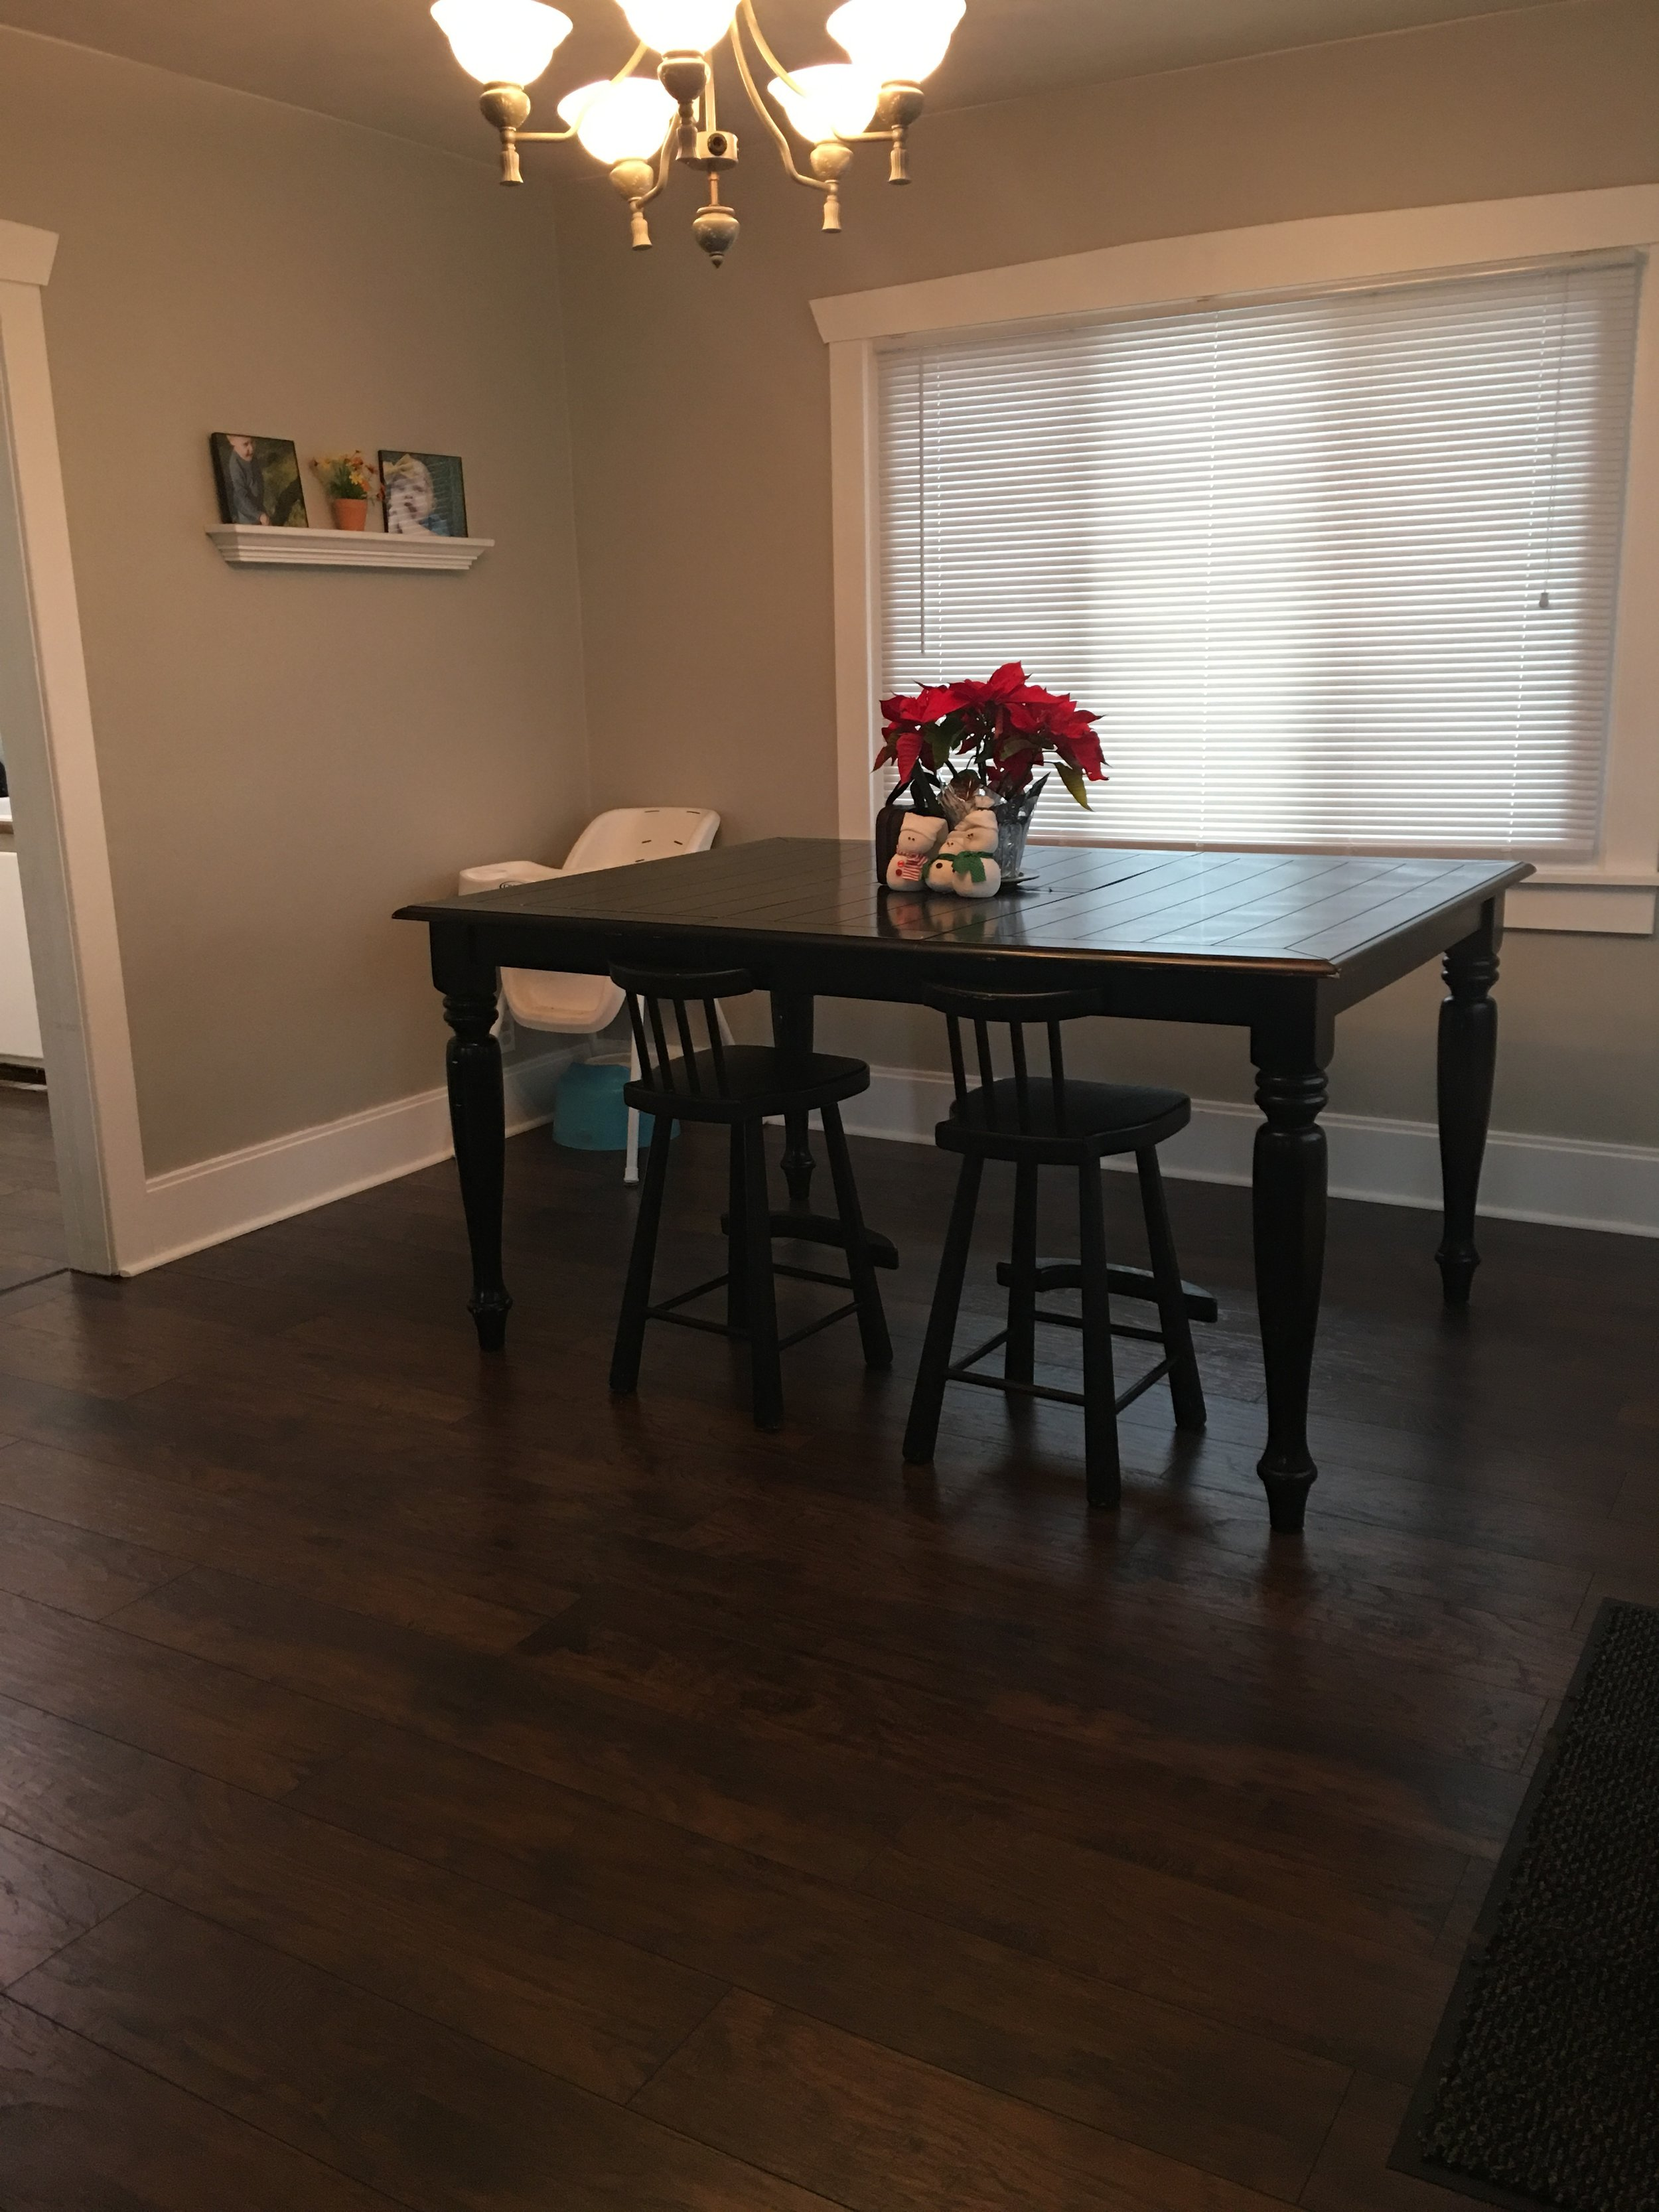 West side: Table and chairs from KSL for $20